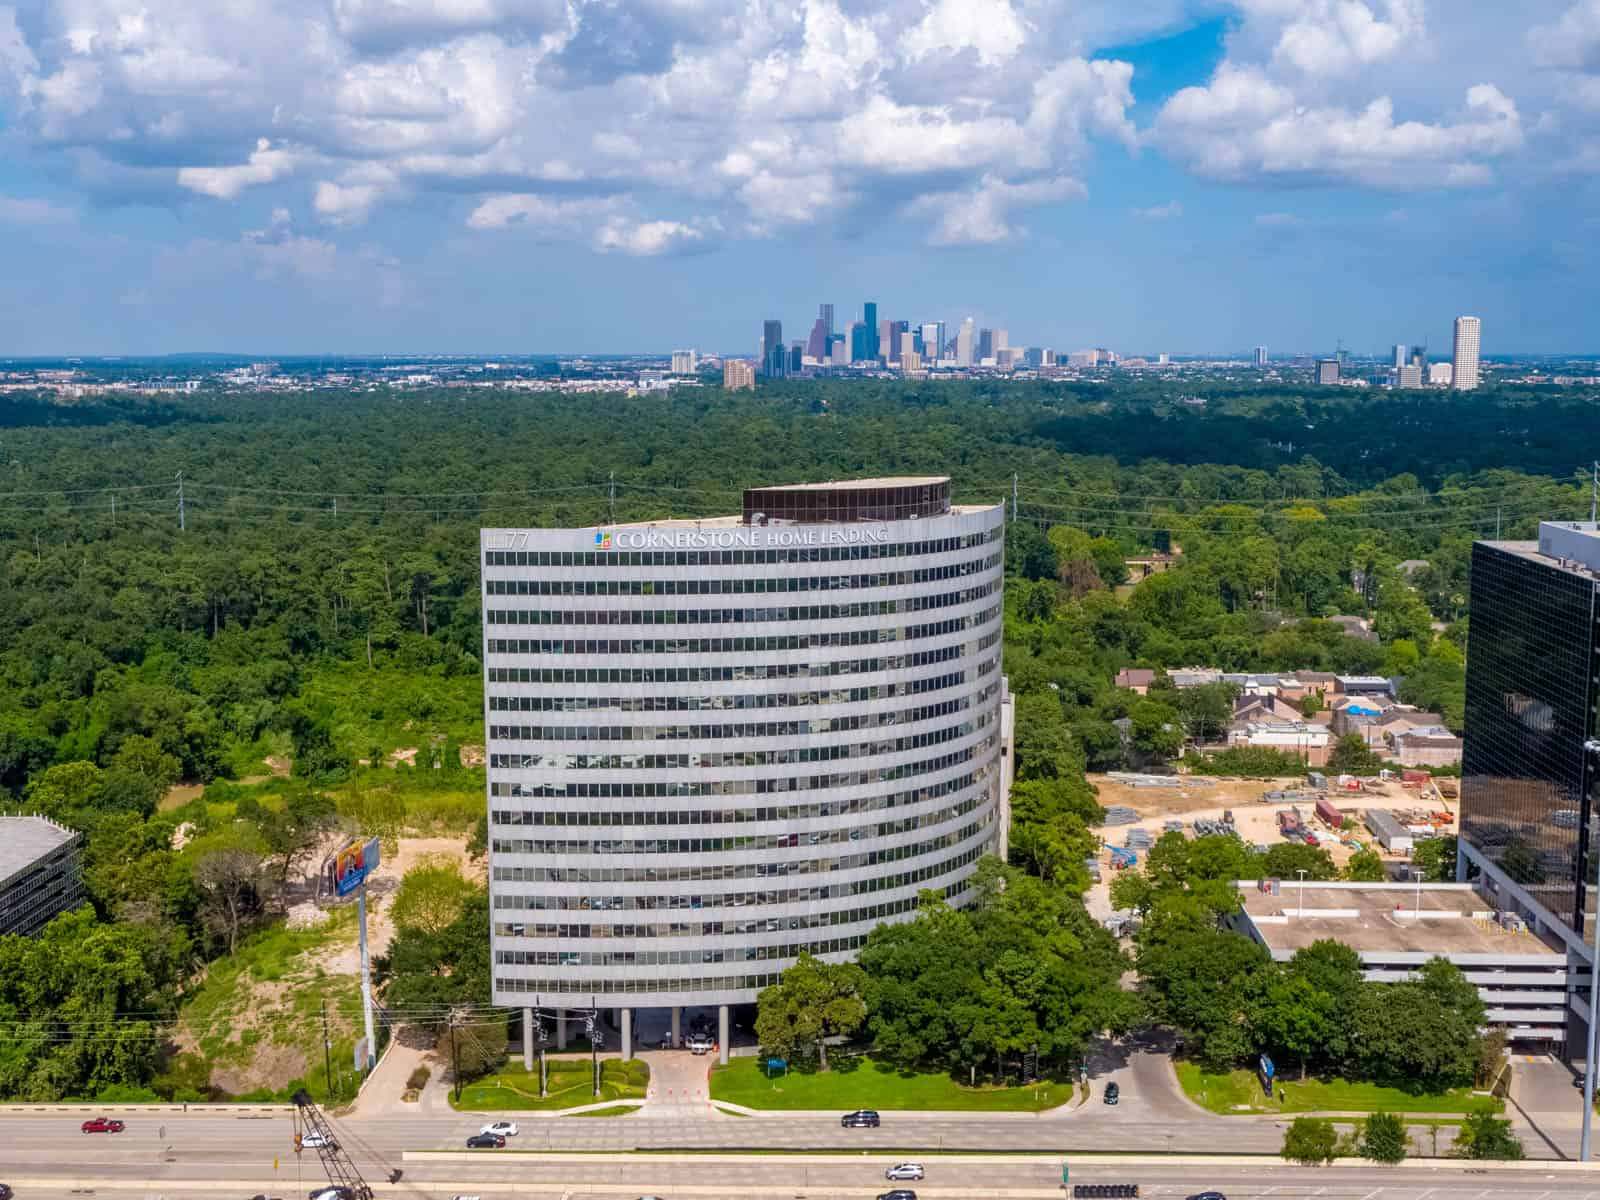 aerial drone photo of newly constructed office building in Texas with city in background